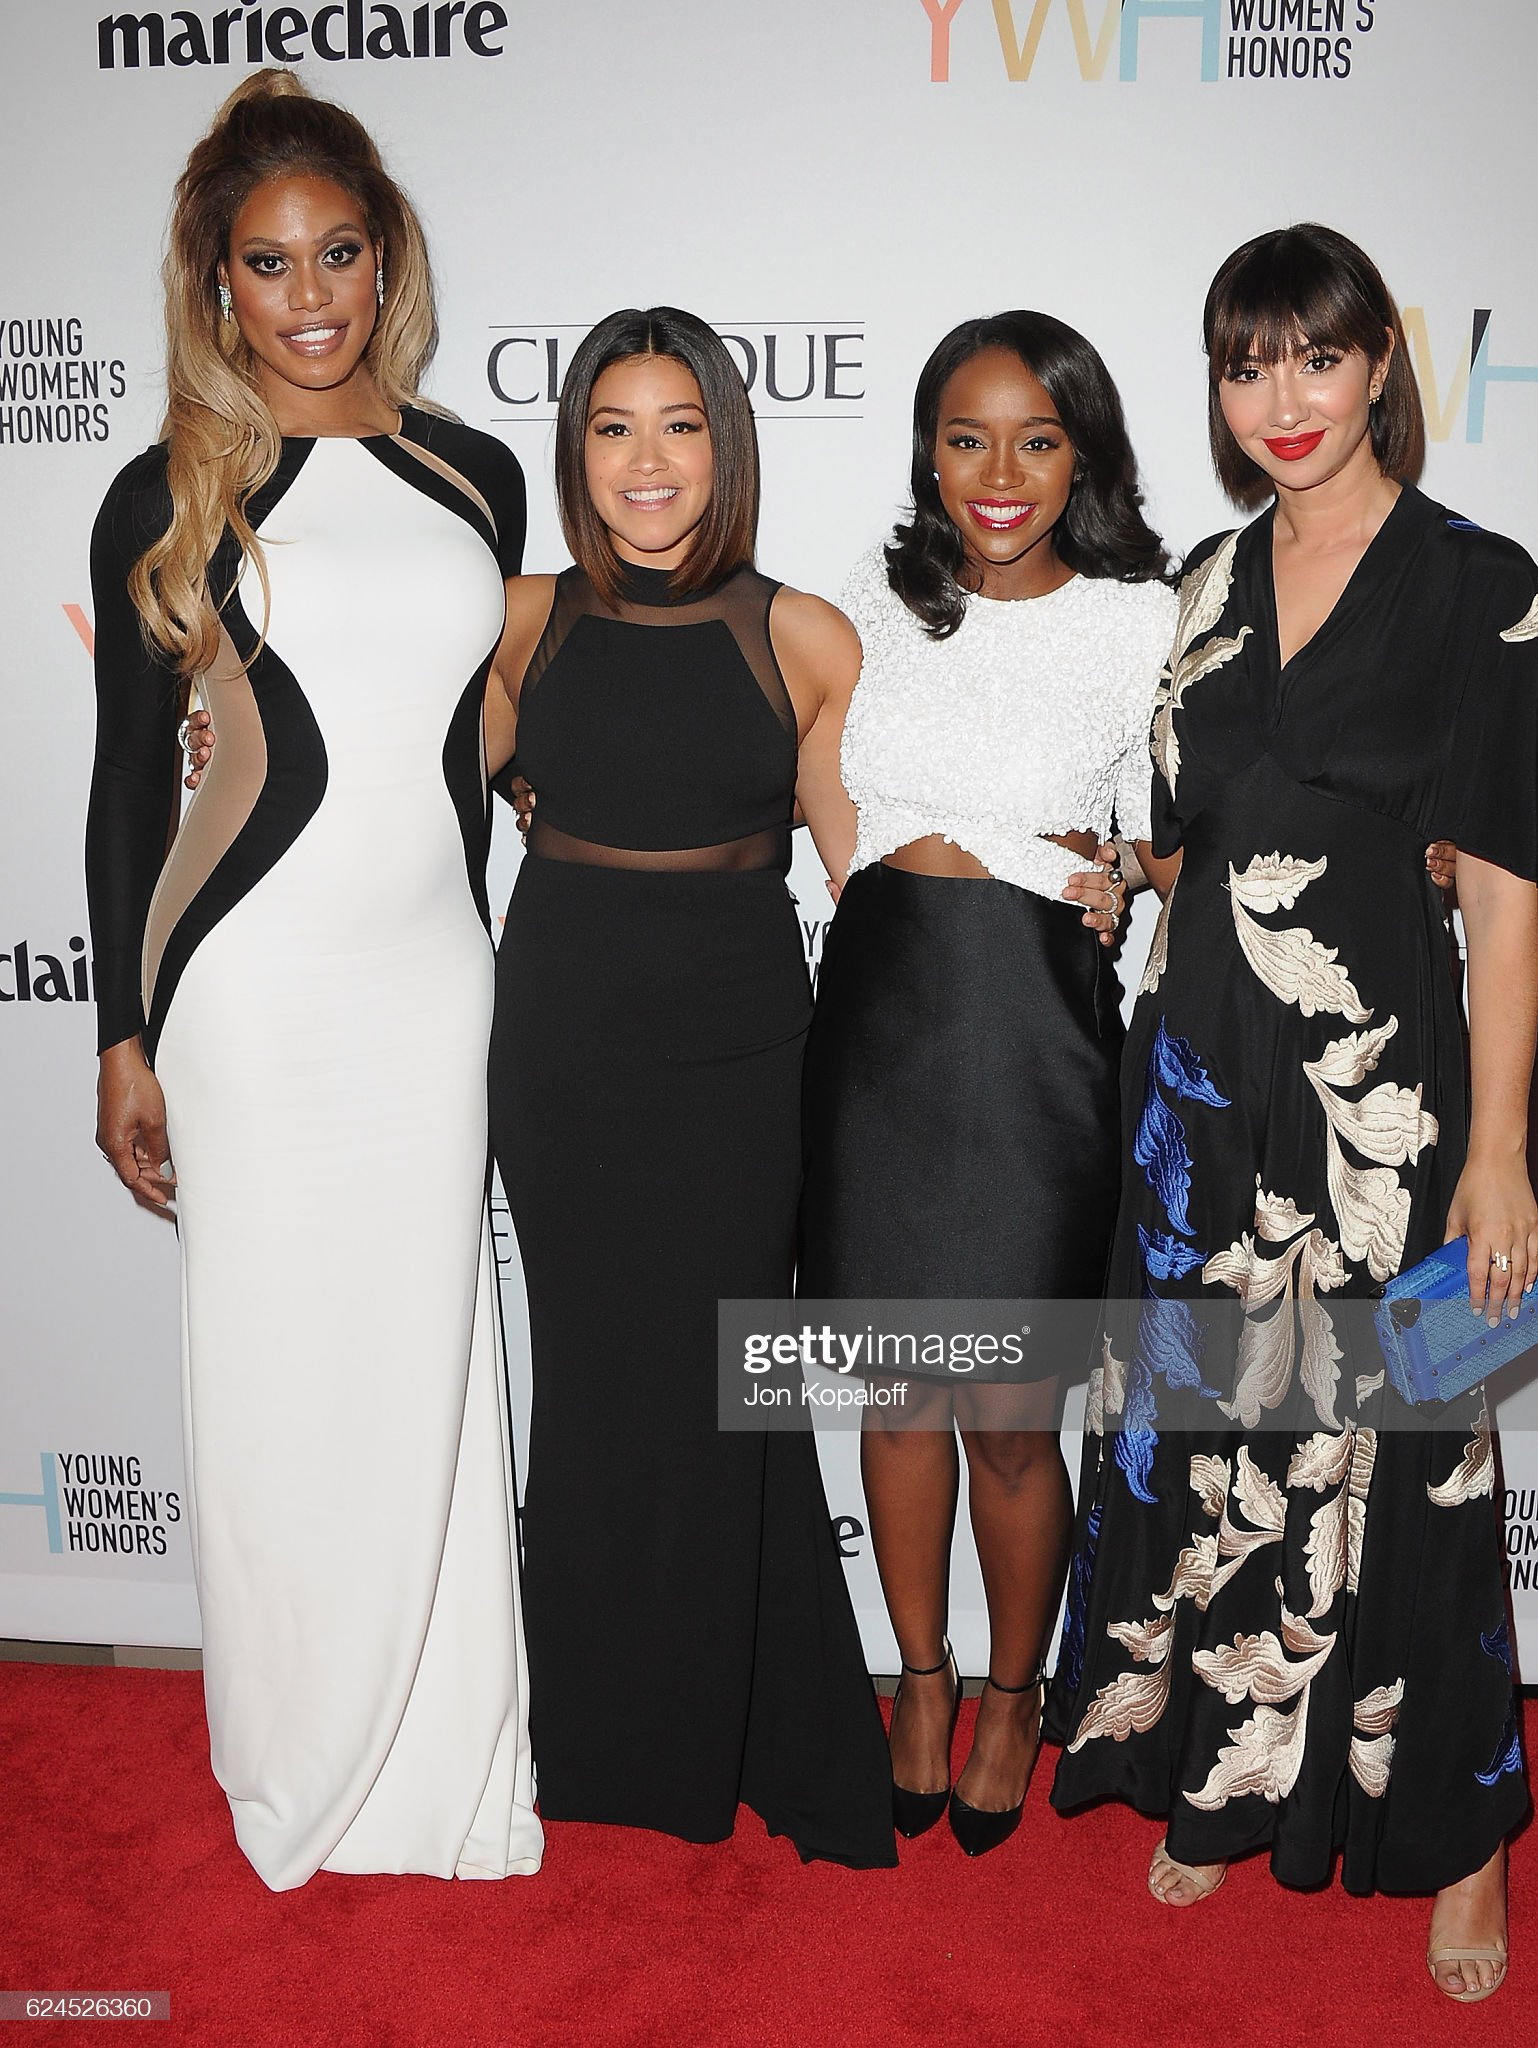 ¿Cuánto mide Gina Rodríguez? - Real height Laverne-cox-gina-rodriguez-aja-naomi-king-and-jackie-cruz-arrive-at-picture-id624526360?s=2048x2048